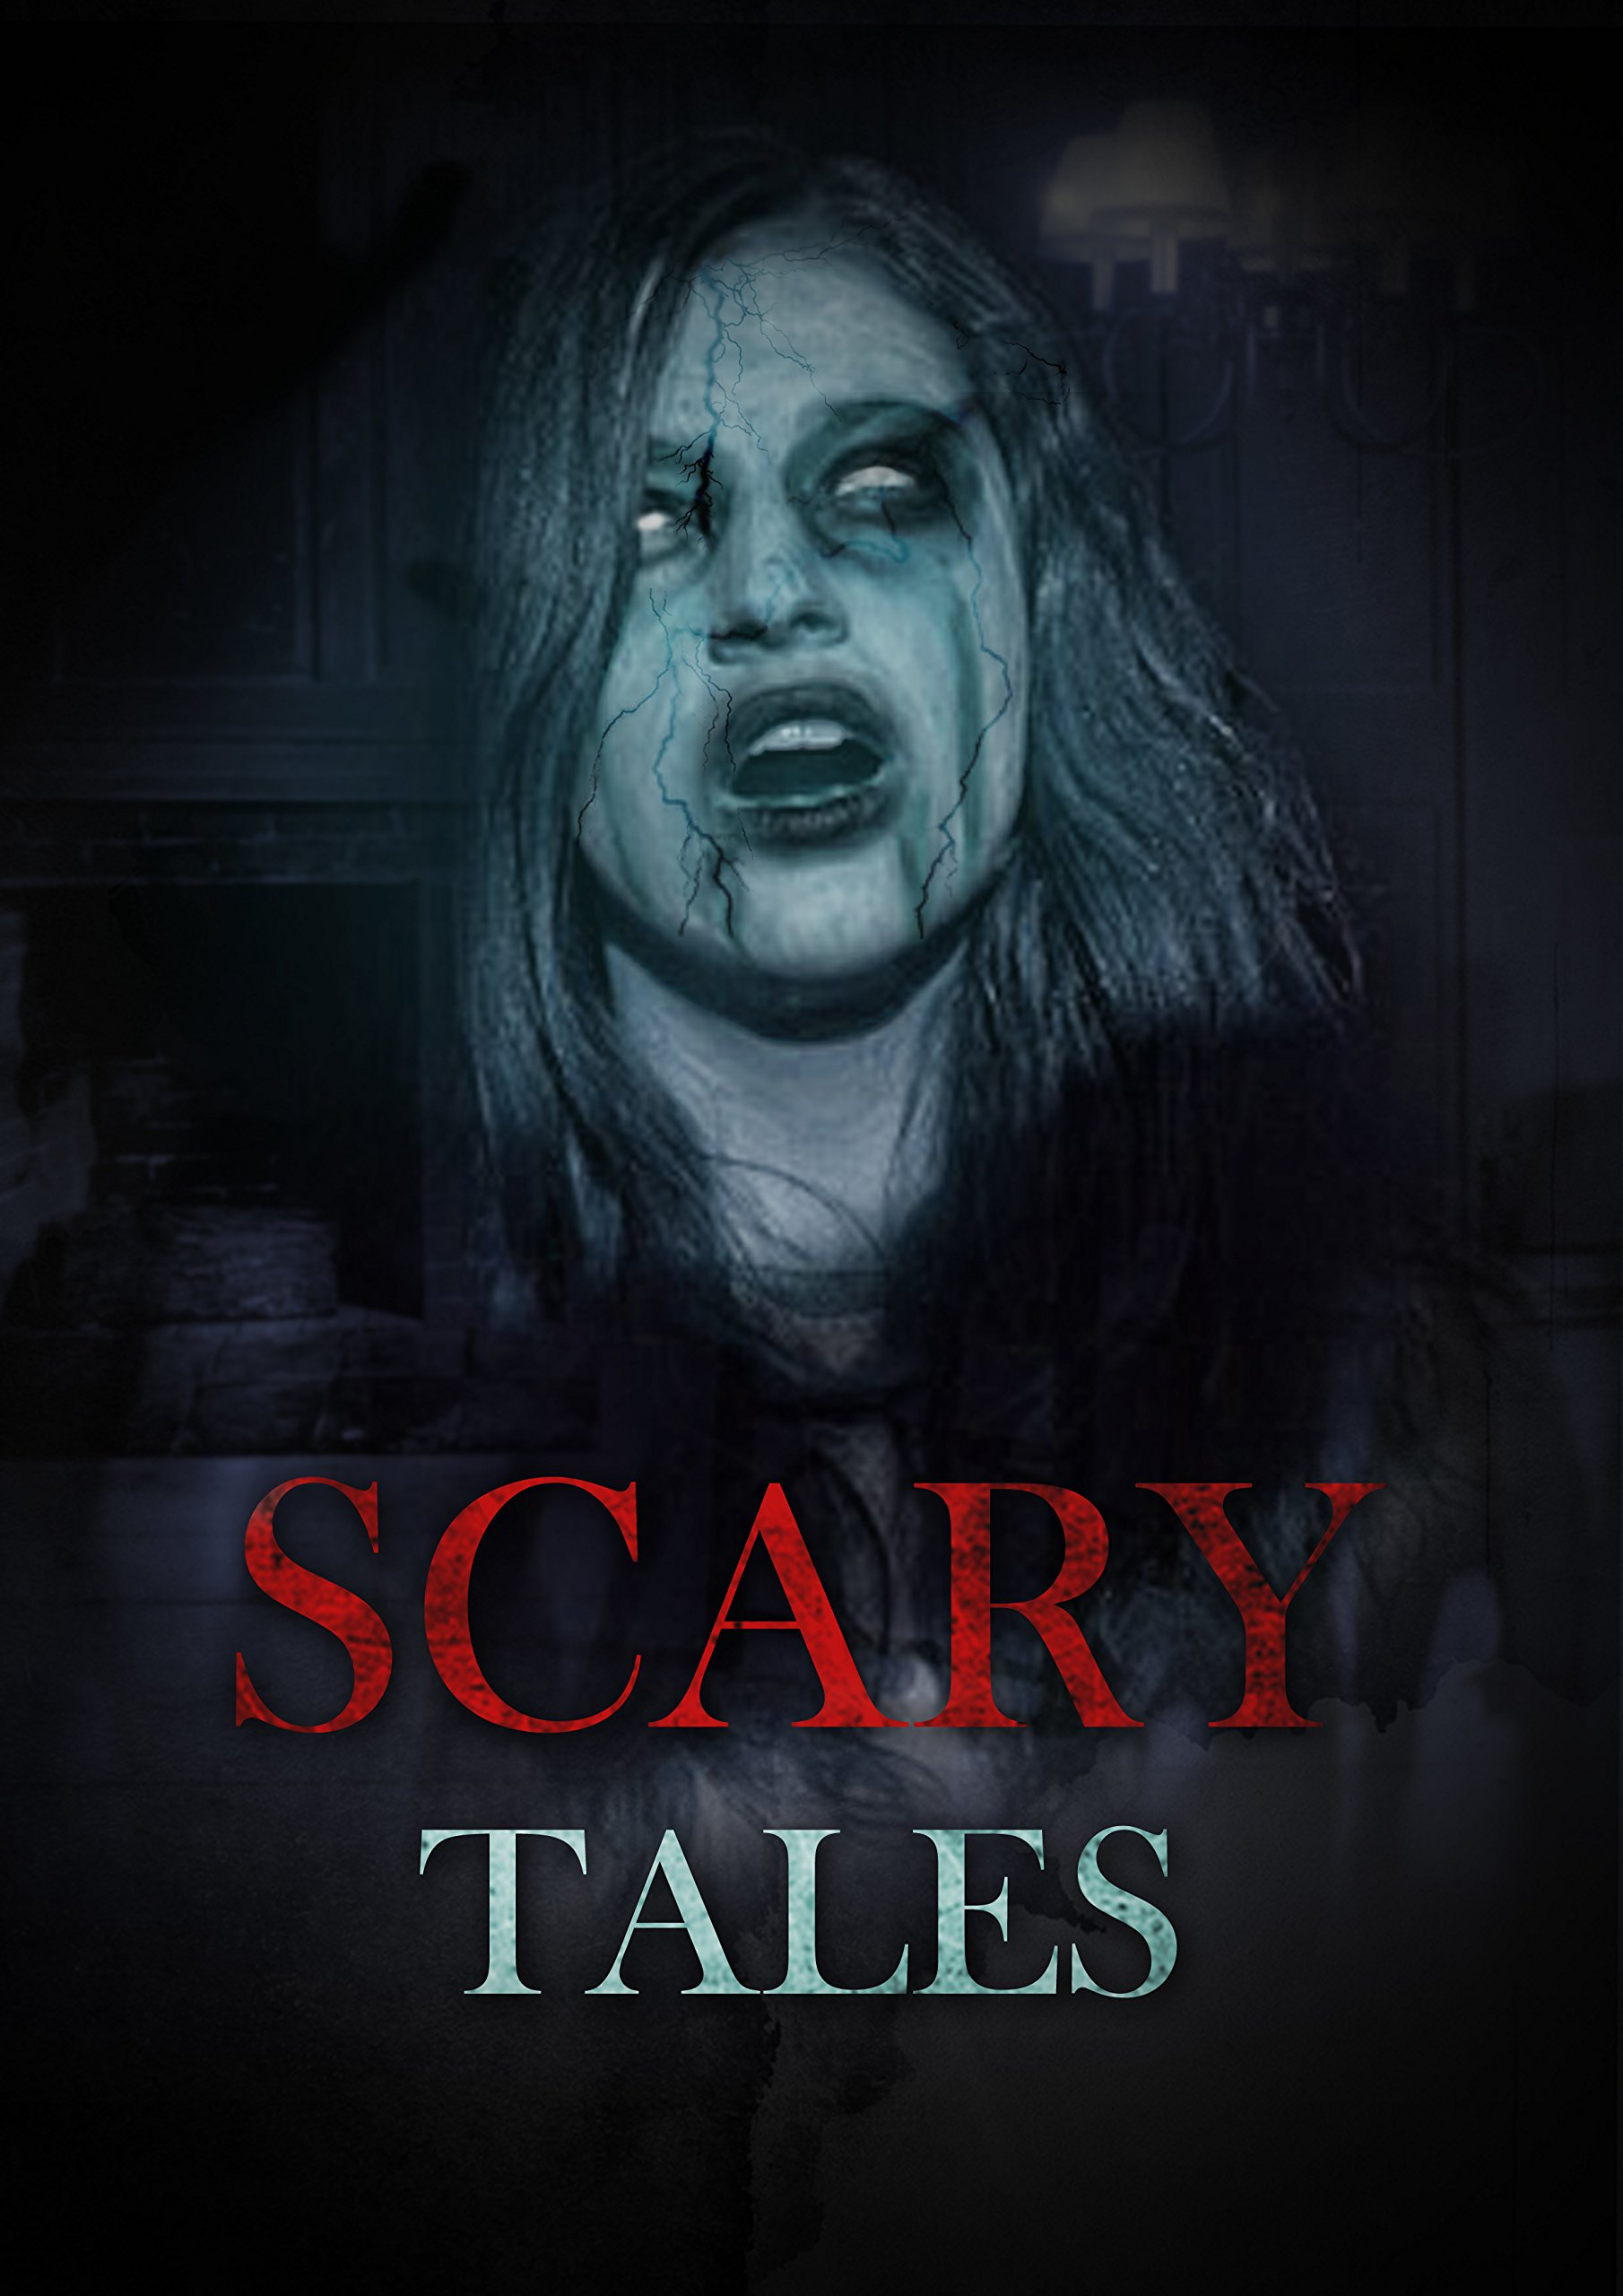 Watch Scary Tales Prime Video